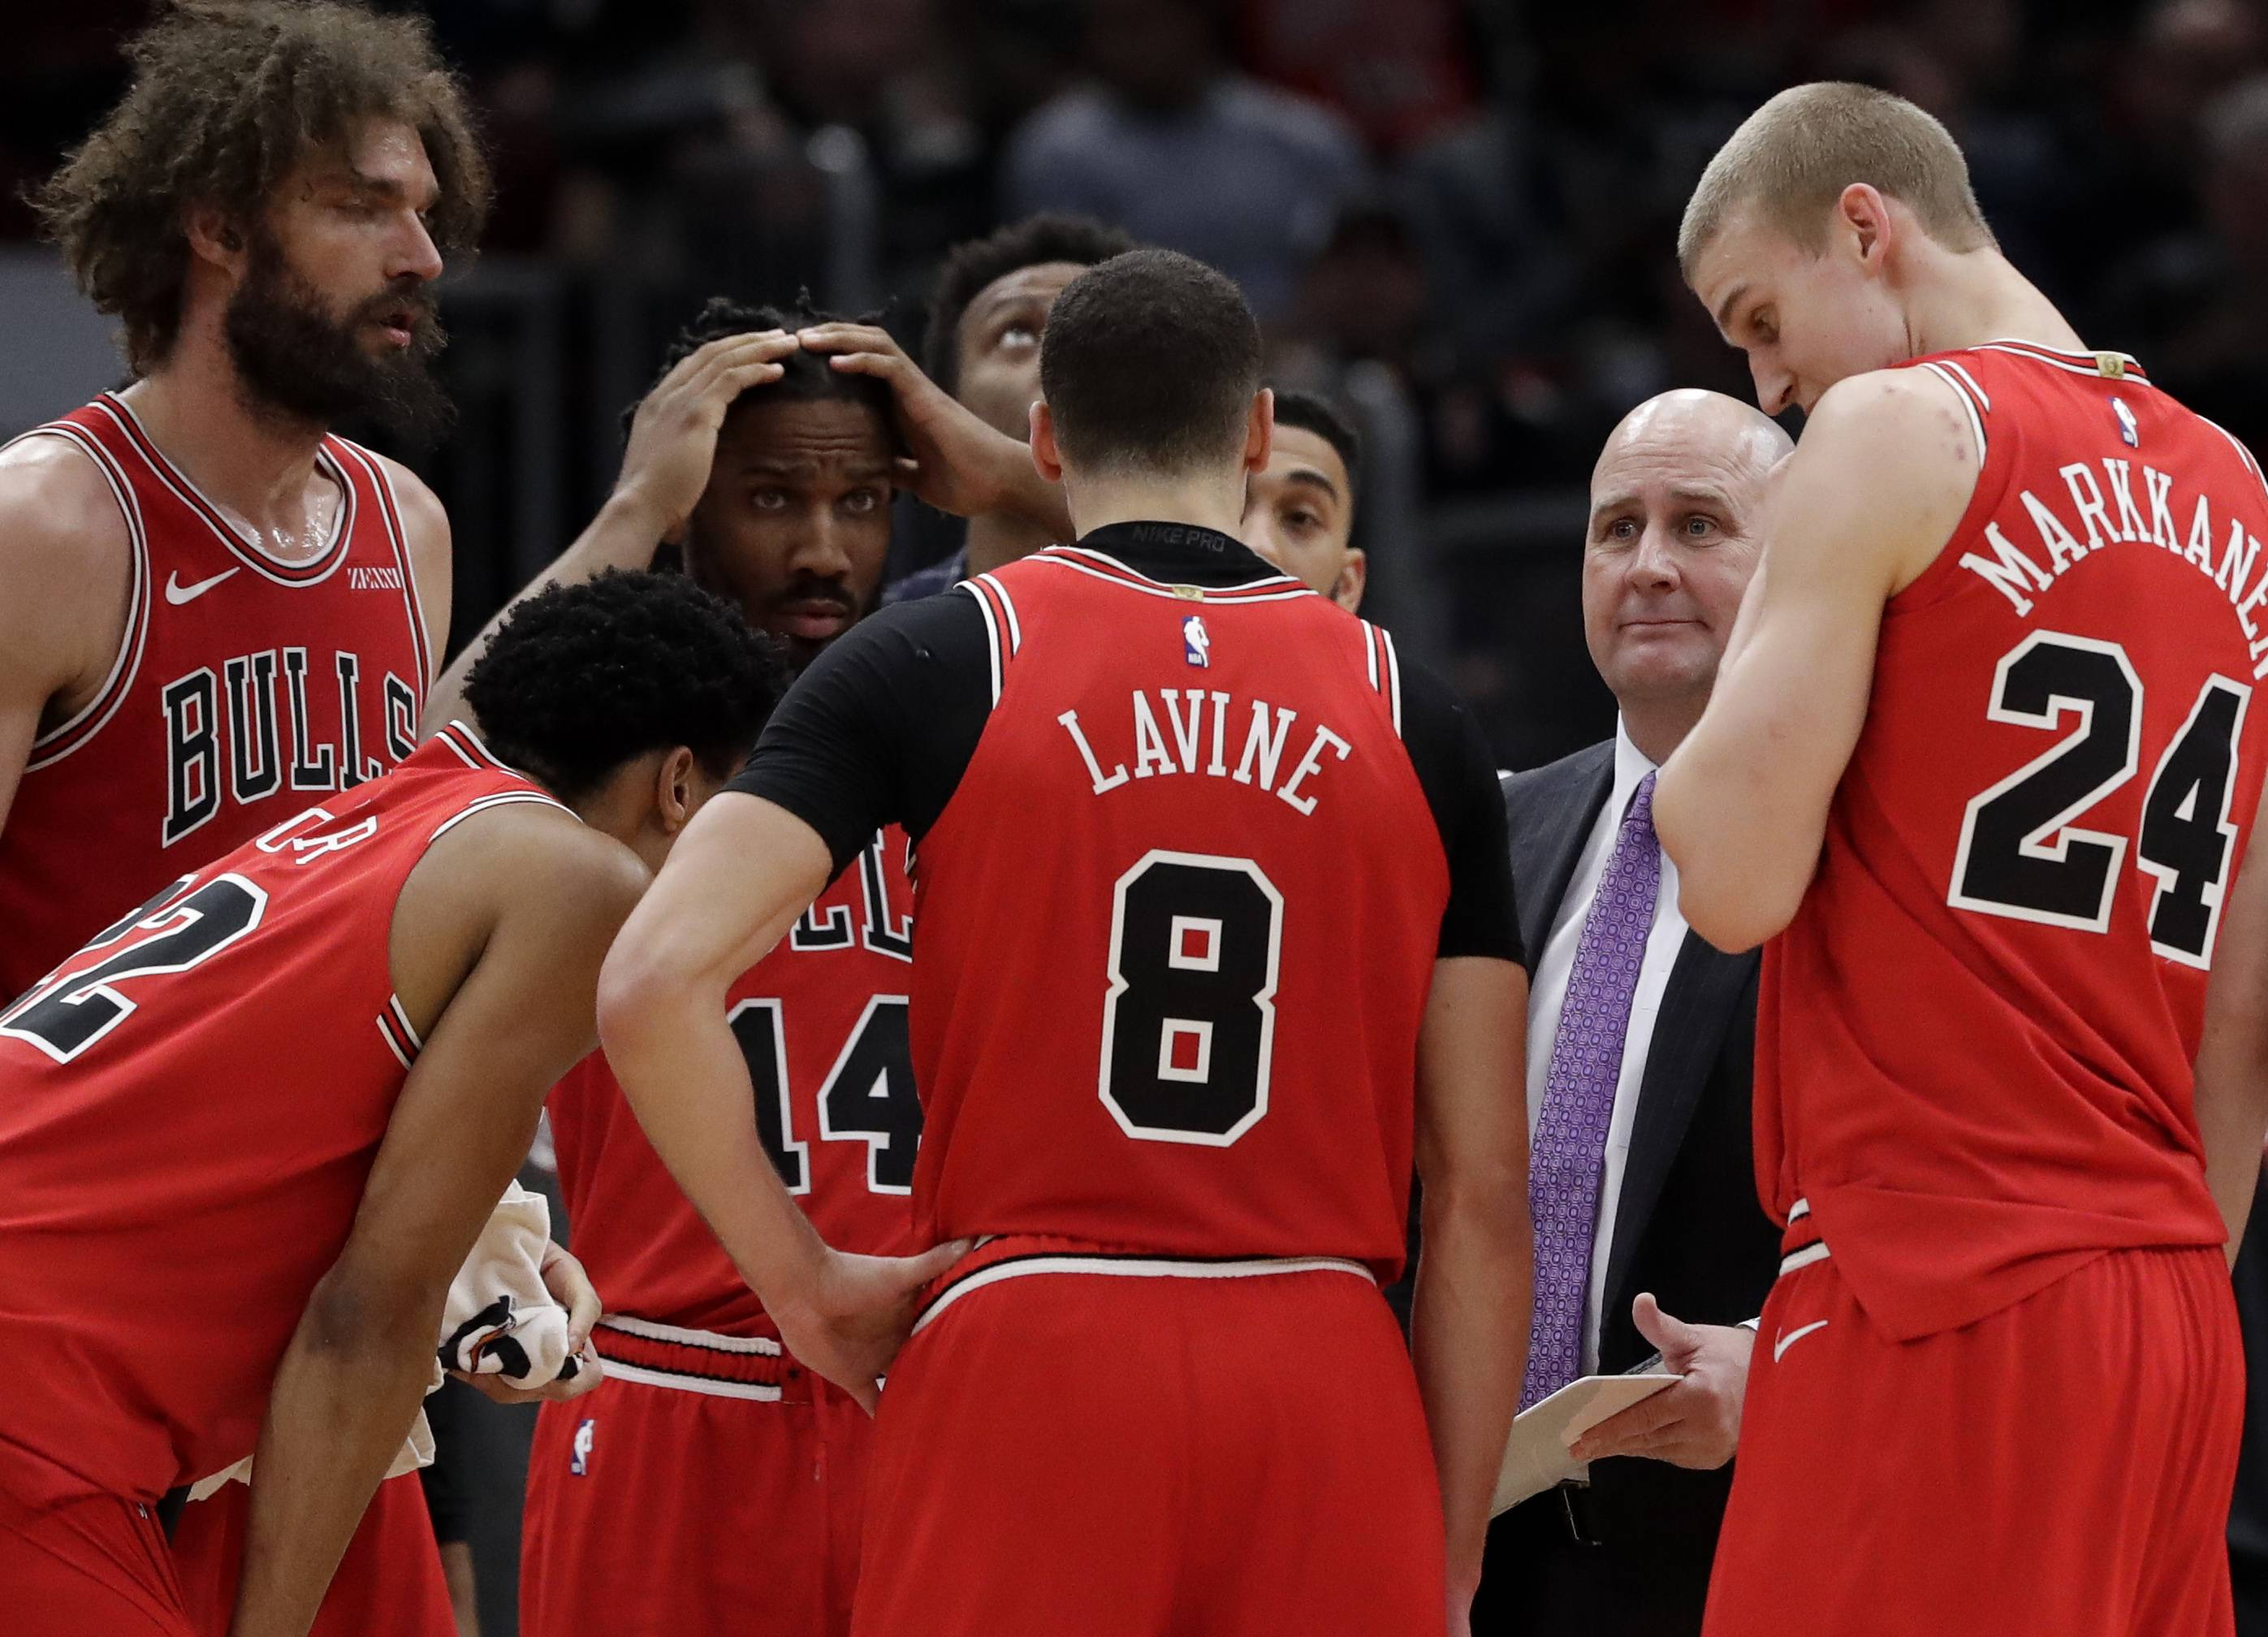 Chicago Bulls coach Jim Boylen, second from right, talks to his team during the second half of an NBA basketball game against the Detroit Pistons, Friday, March 8, 2019, in Chicago. The Pistons won 112-104.